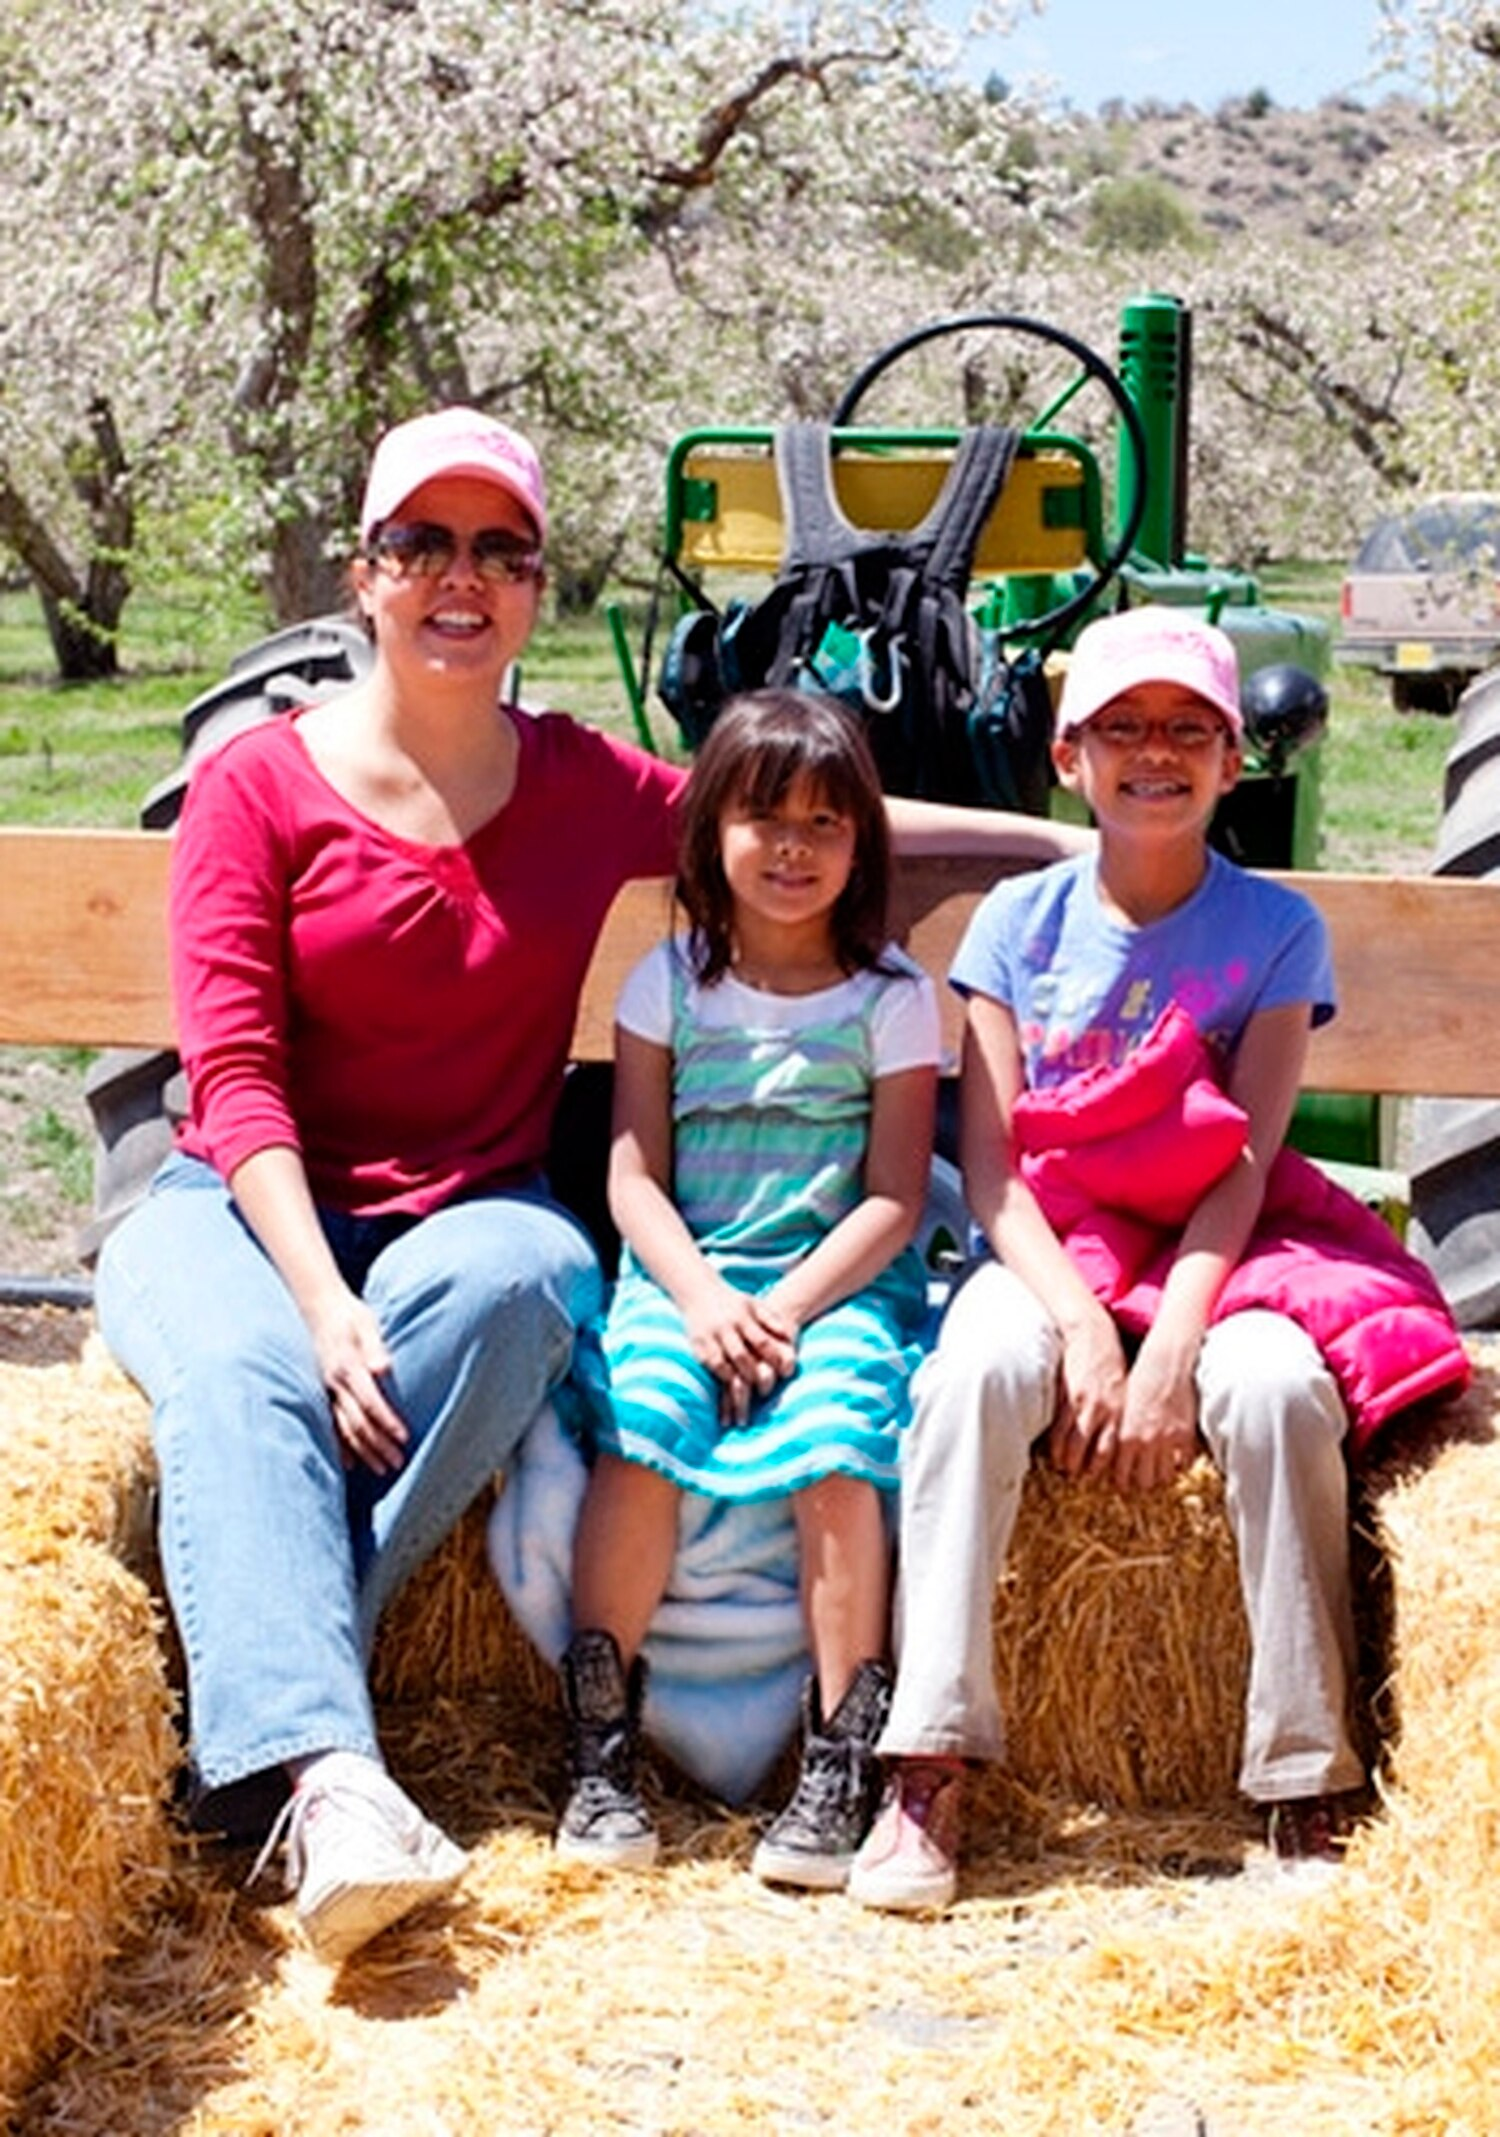 Springtime hayrides were also popular events at the orchard.